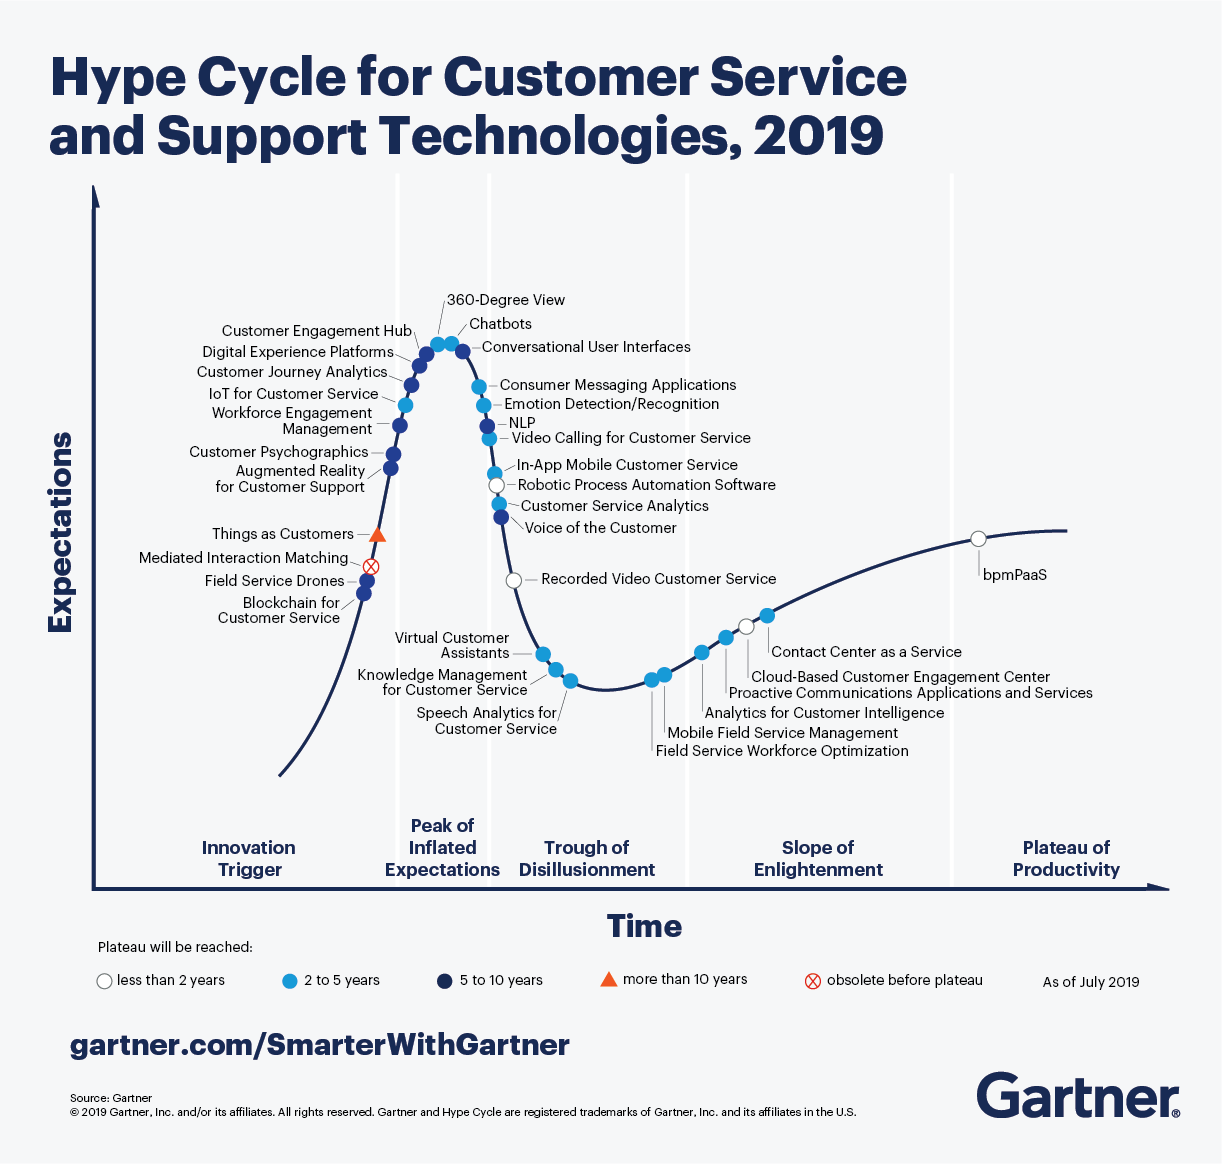 Gartner Hype Cycle for Customer Service and Support Technologies, 2019